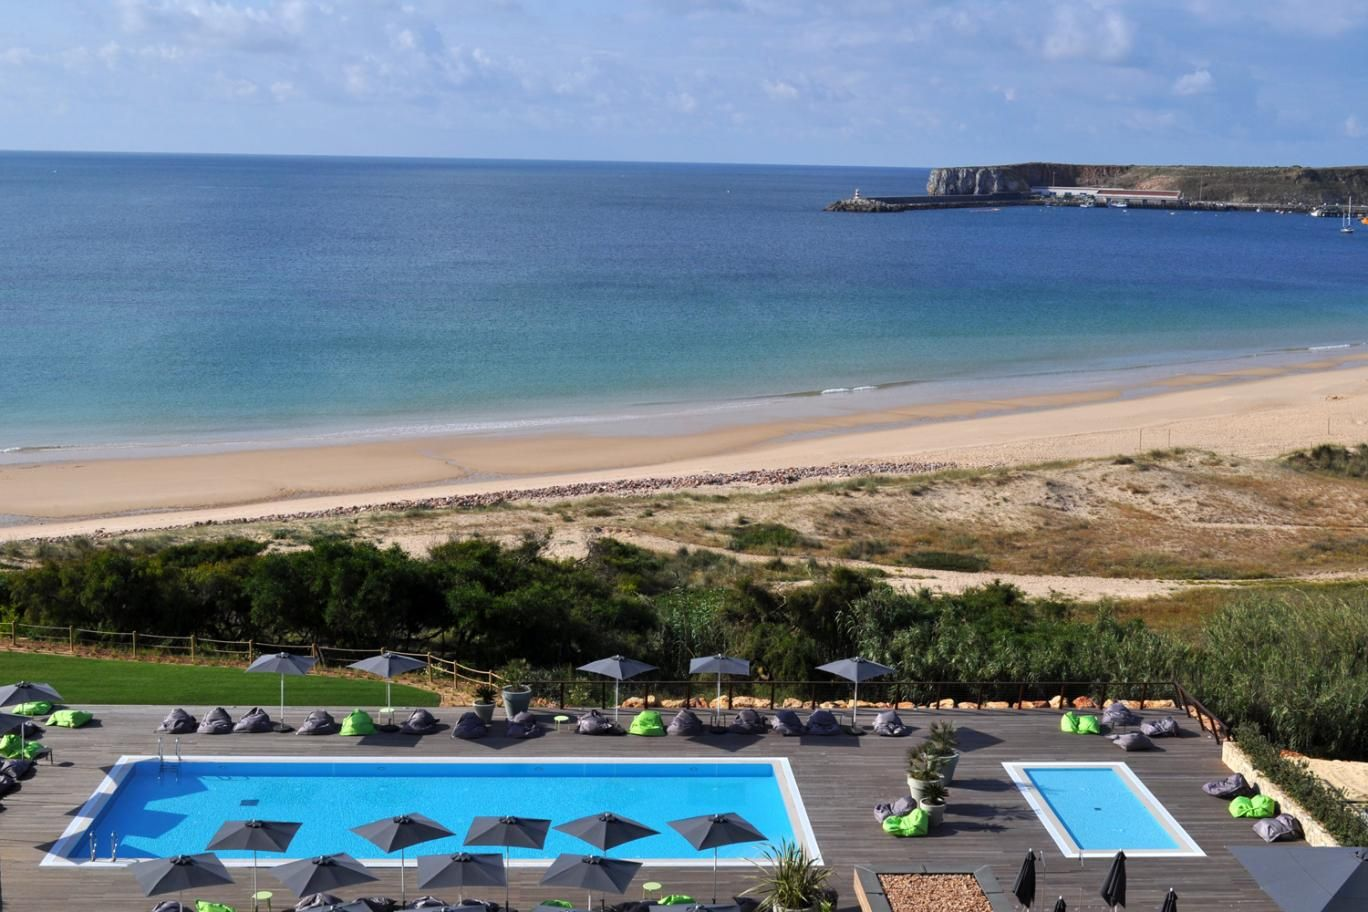 Natural beauty of Algarve resort surrounded by national park | Travel | Lifestyle | London Evening Standard